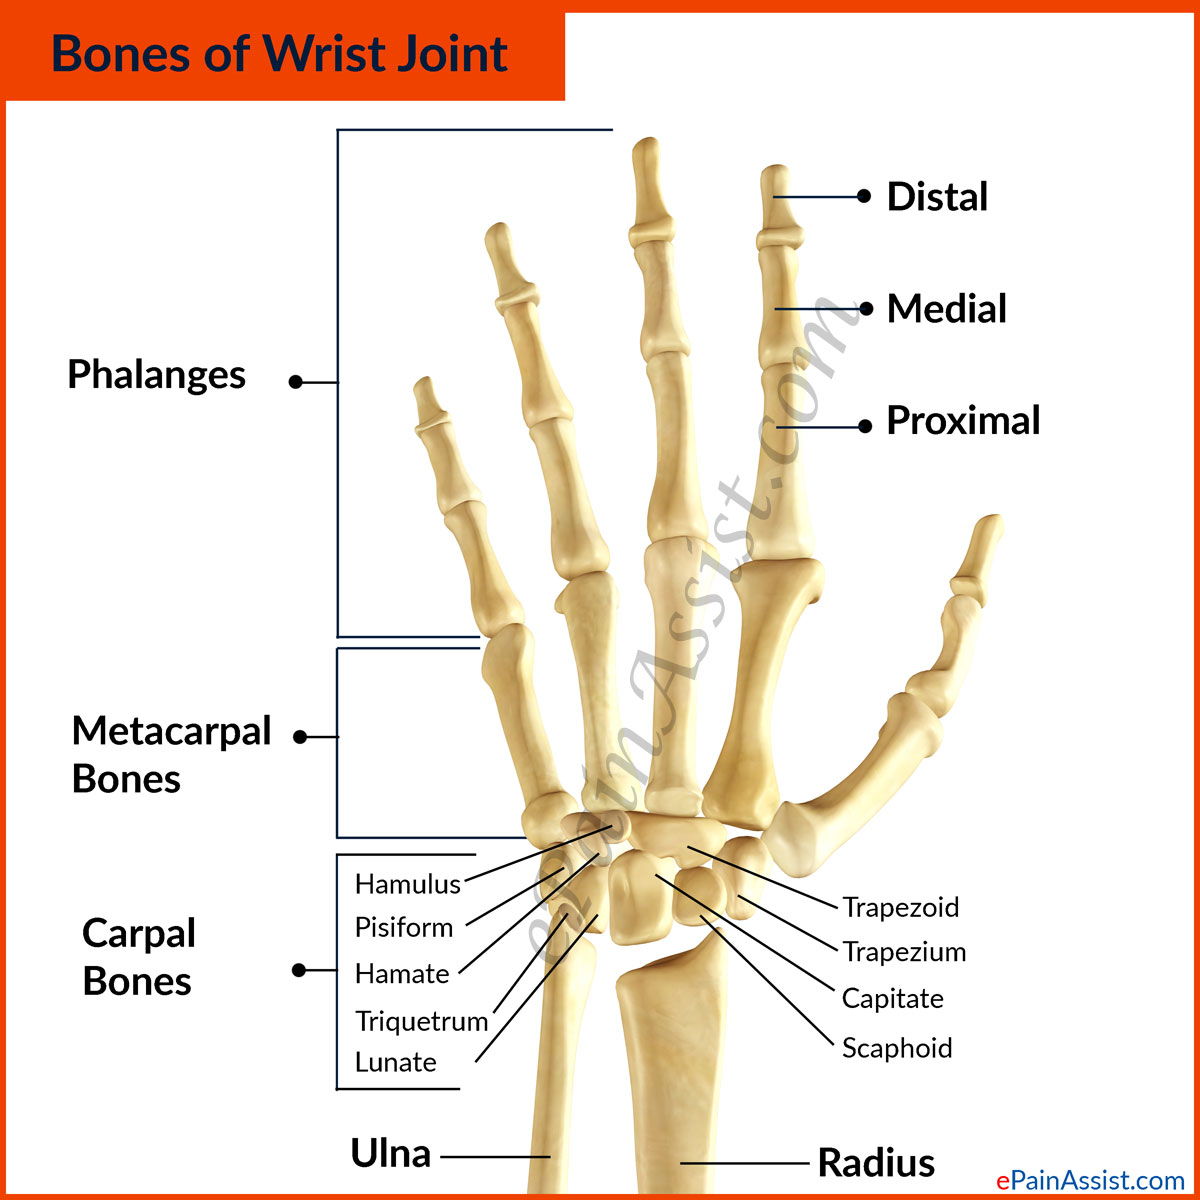 The Three Sections of the Wrist Joint Are As Follows-